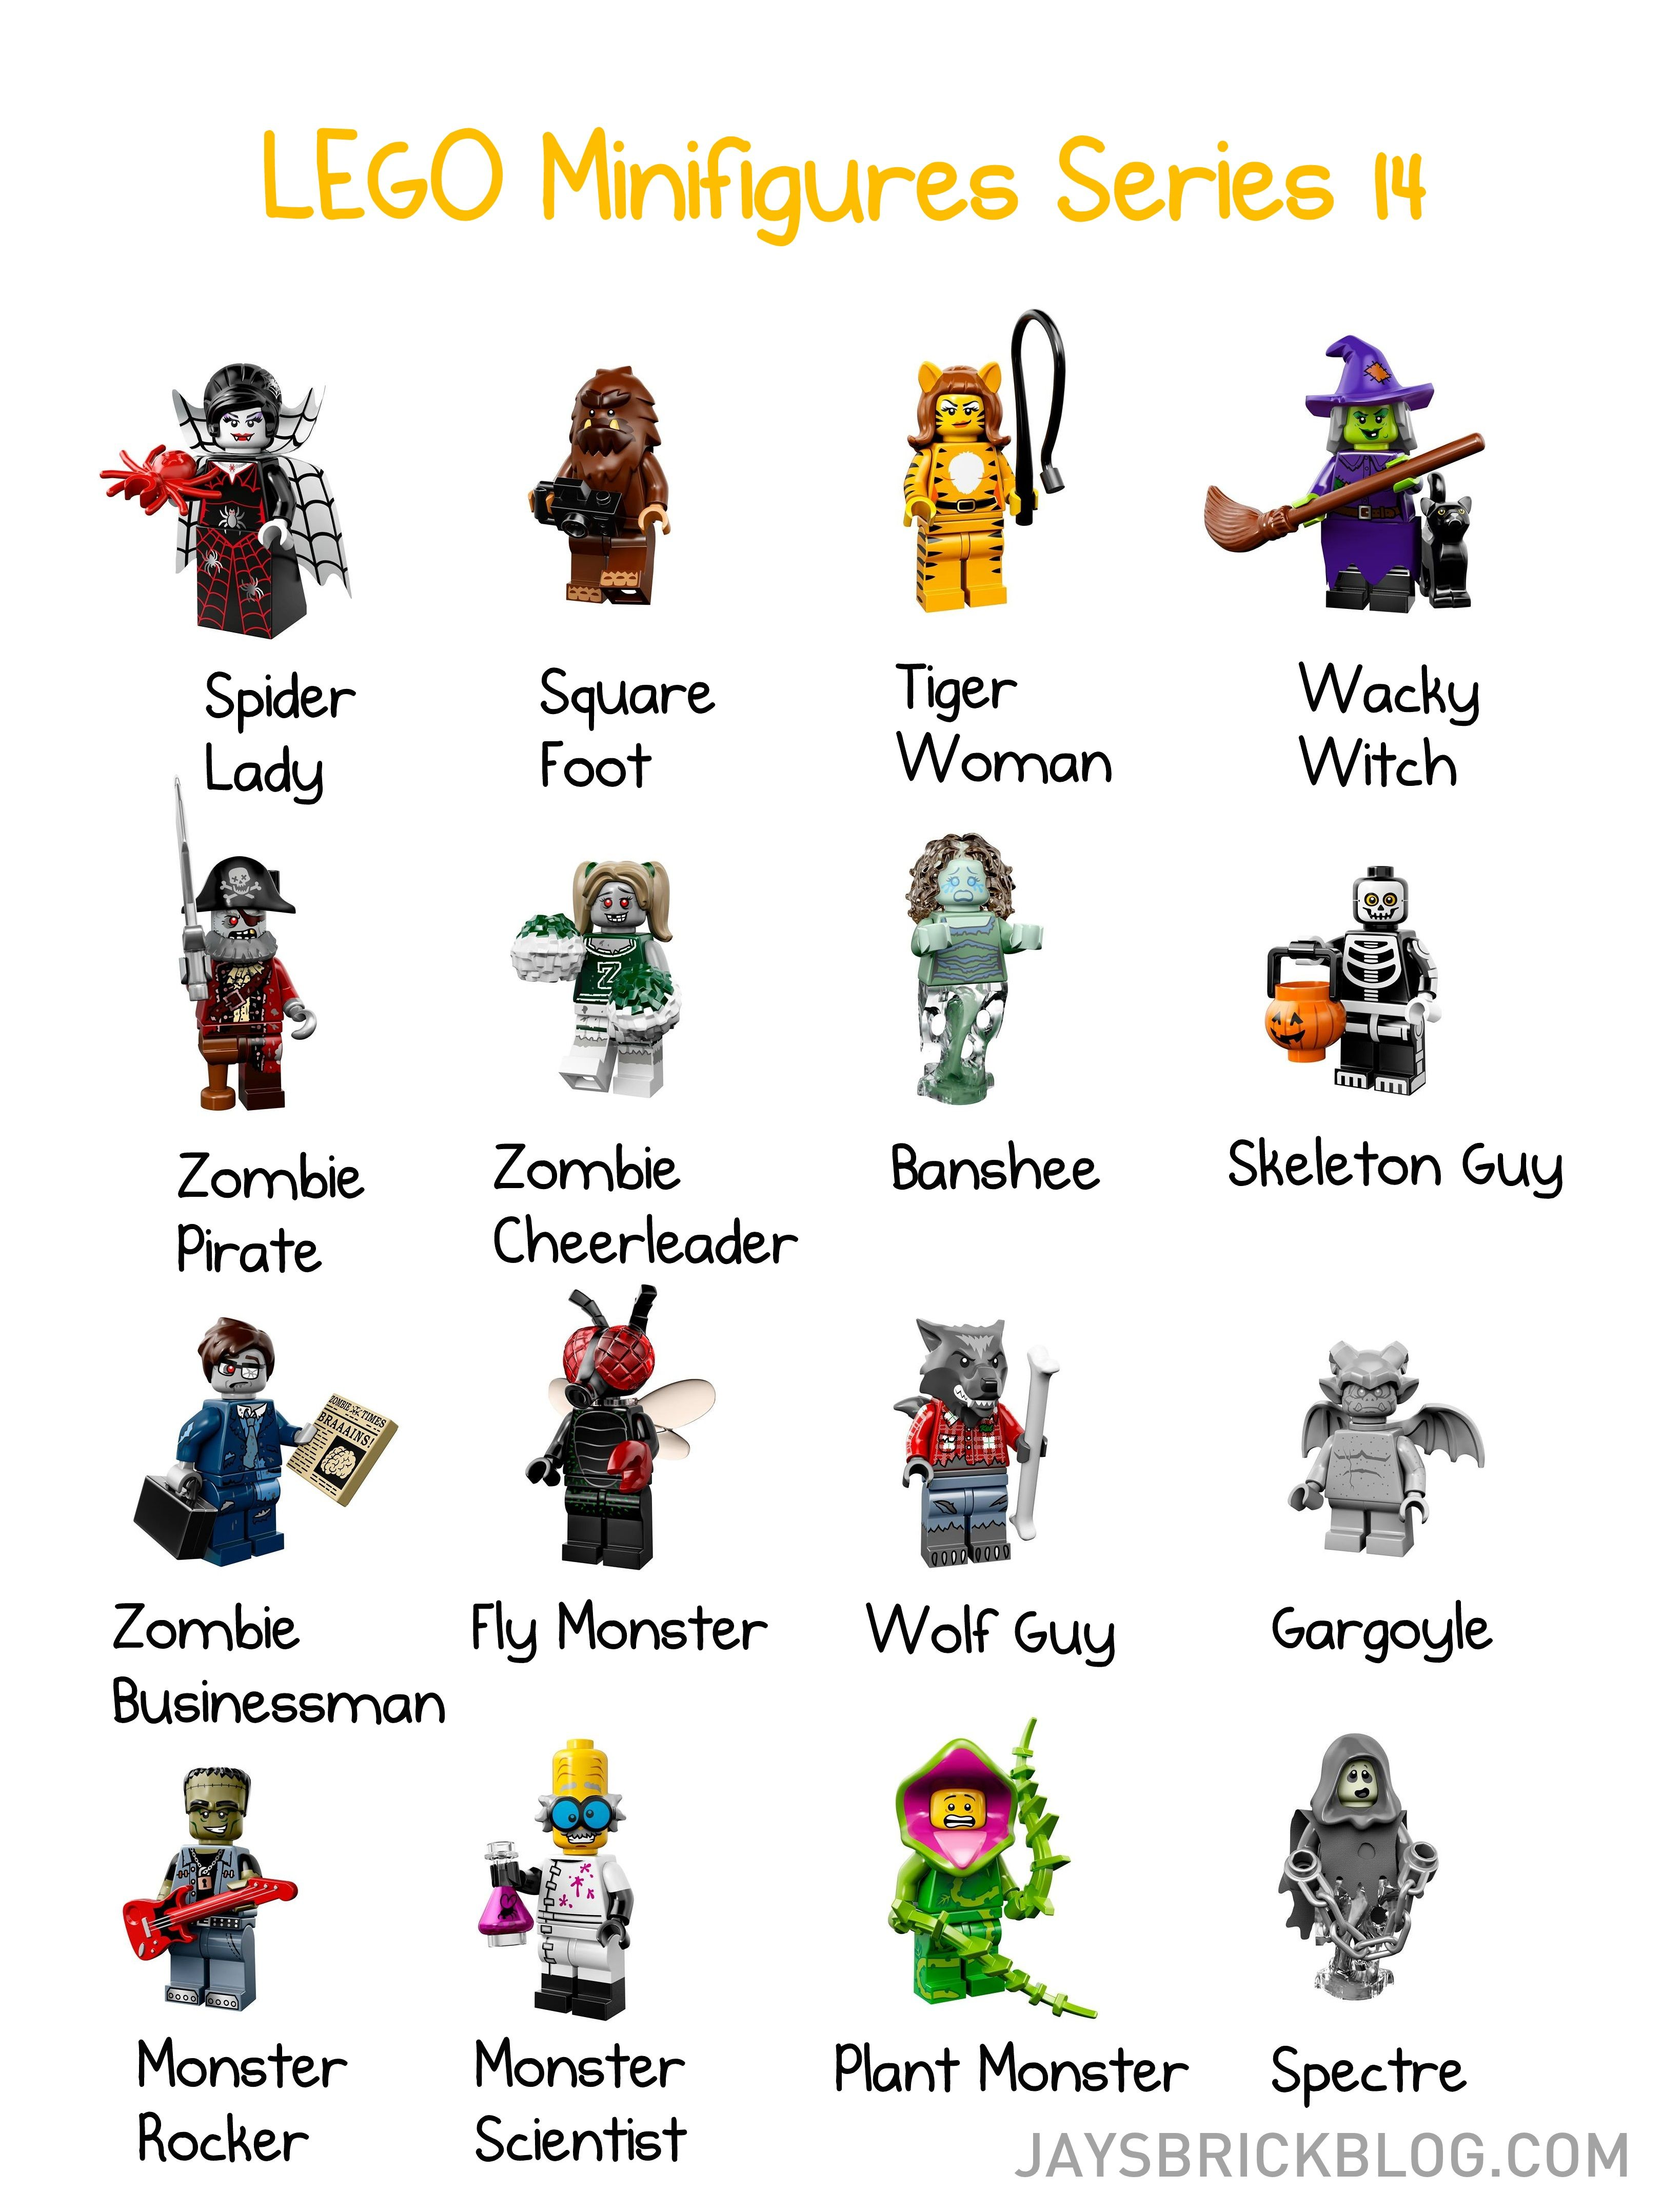 Lego Minifigures Series 14 Includes Some Surprising